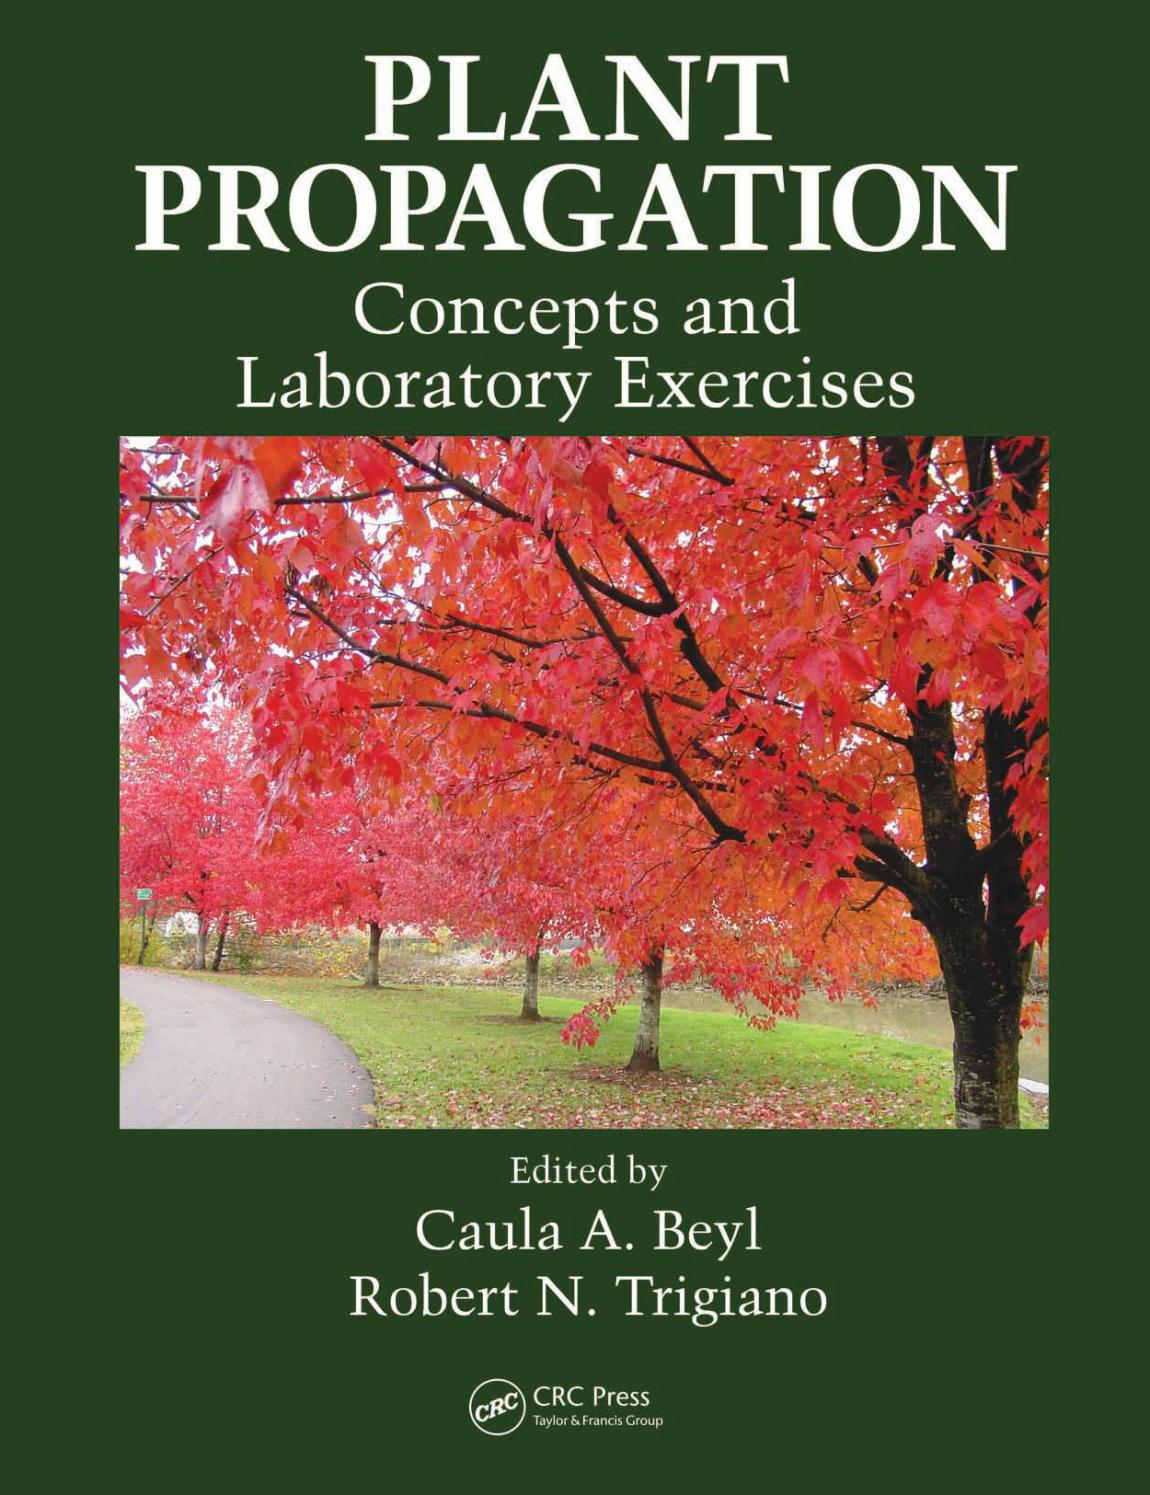 Plant Propagation Concepts And Laboratory Exercices Caula A Beyl Robert N Trigiano Crc Press 2008 1 By Agrihorti Issuu